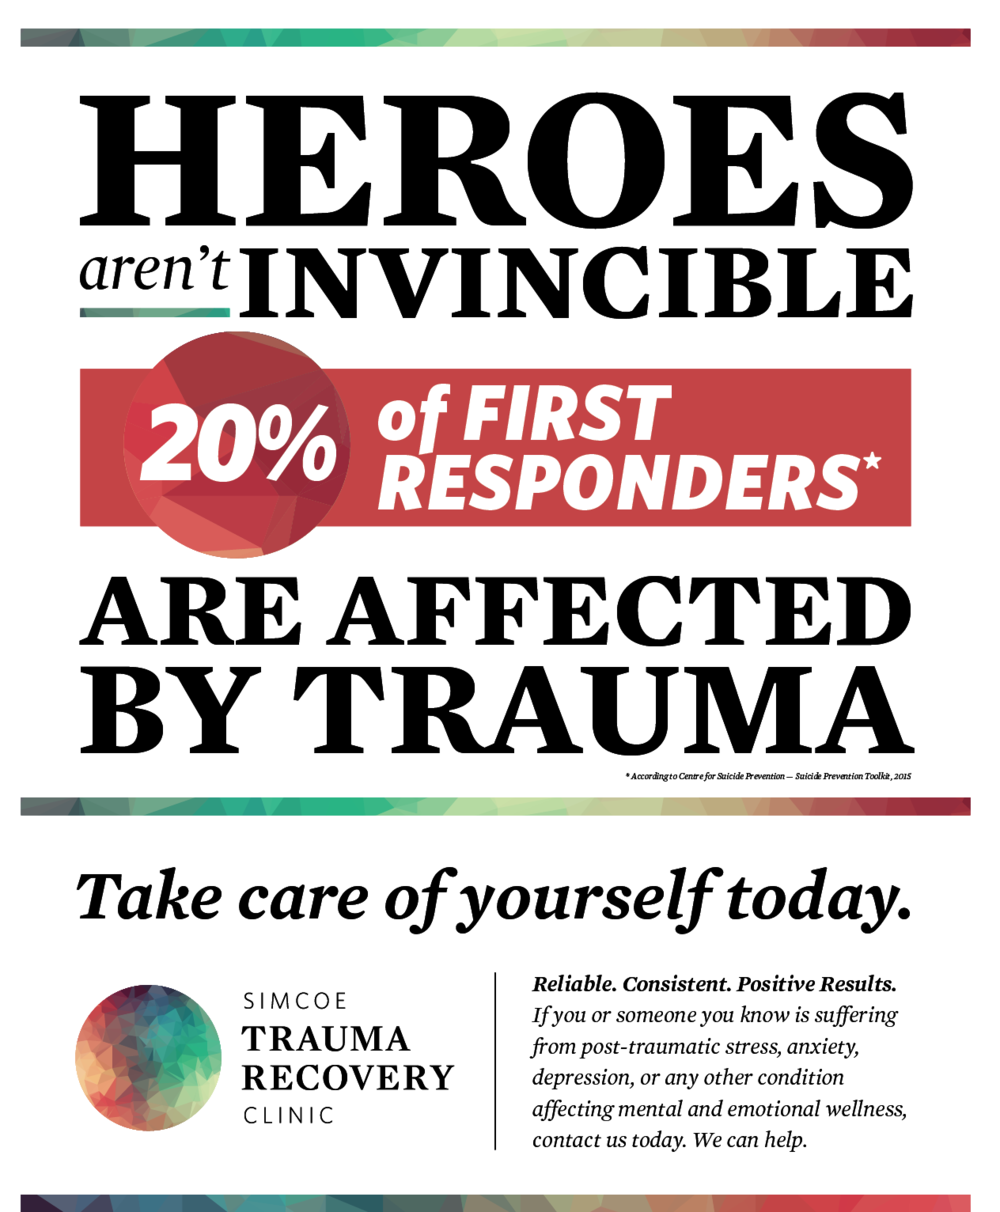 STRC_Heroes_Flyer_Jan2016-01.png